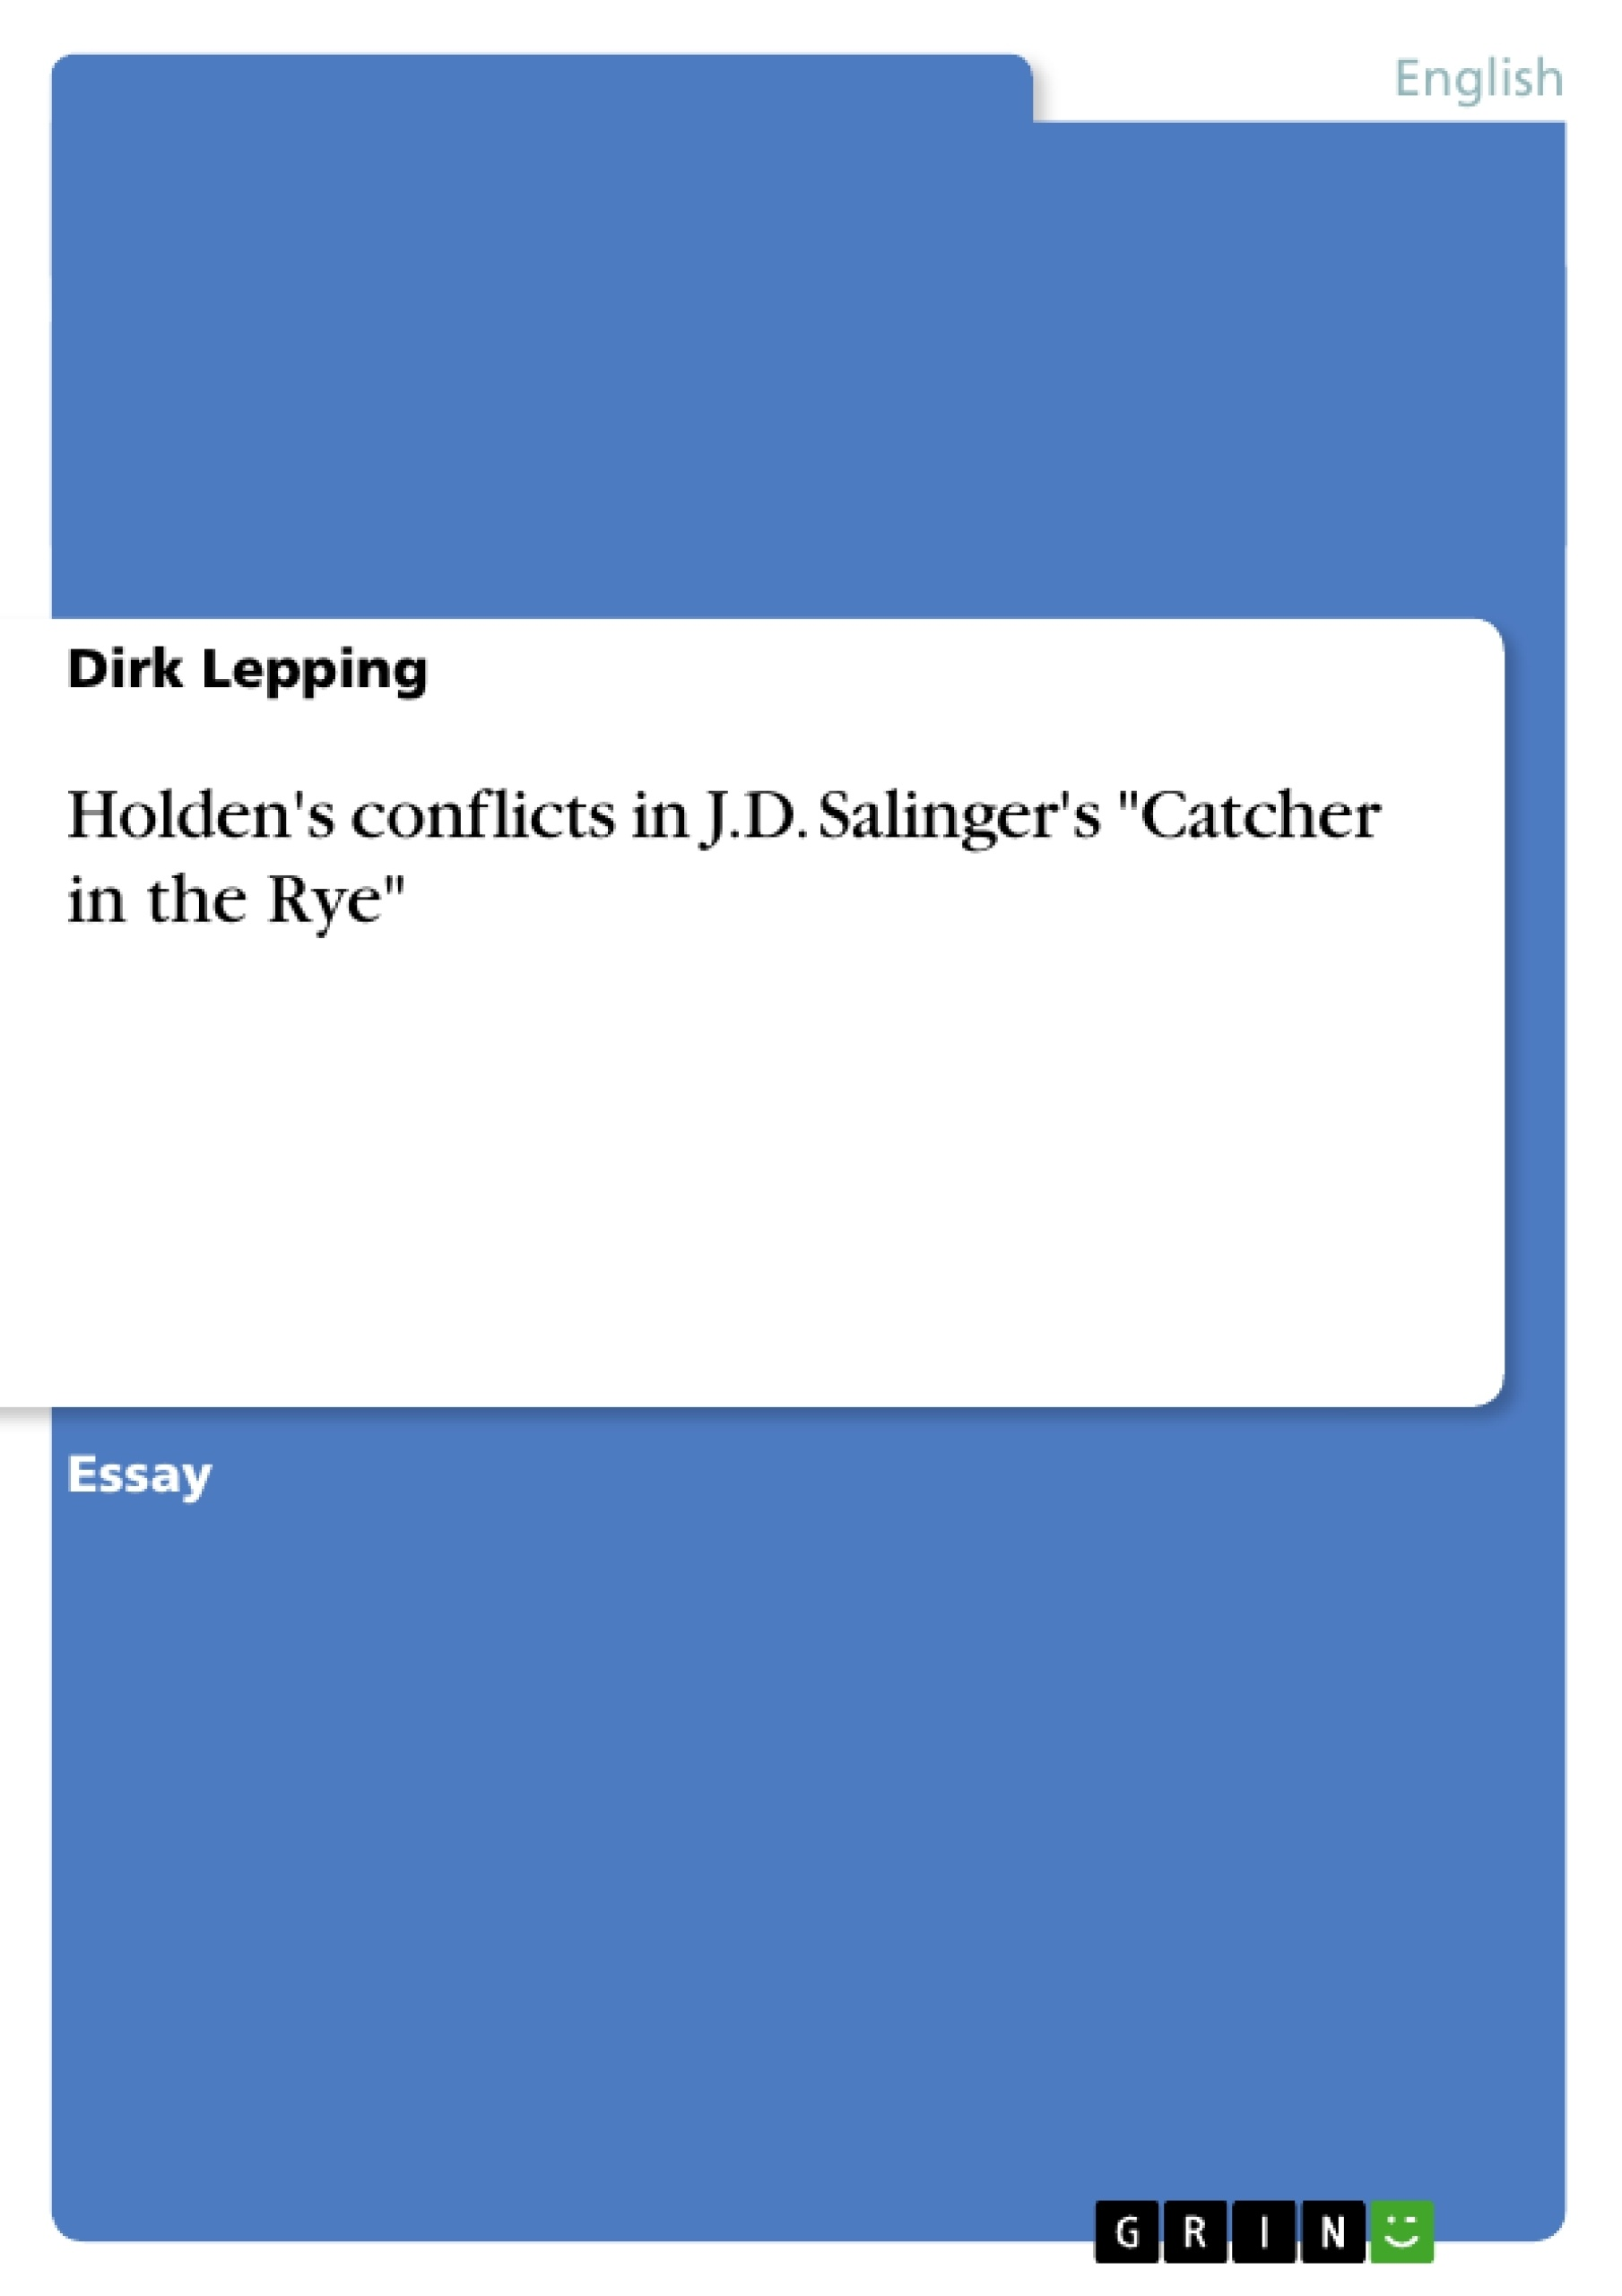 holden s conflicts in j d salinger s catcher in the rye upload your own papers earn money and win an iphone 7